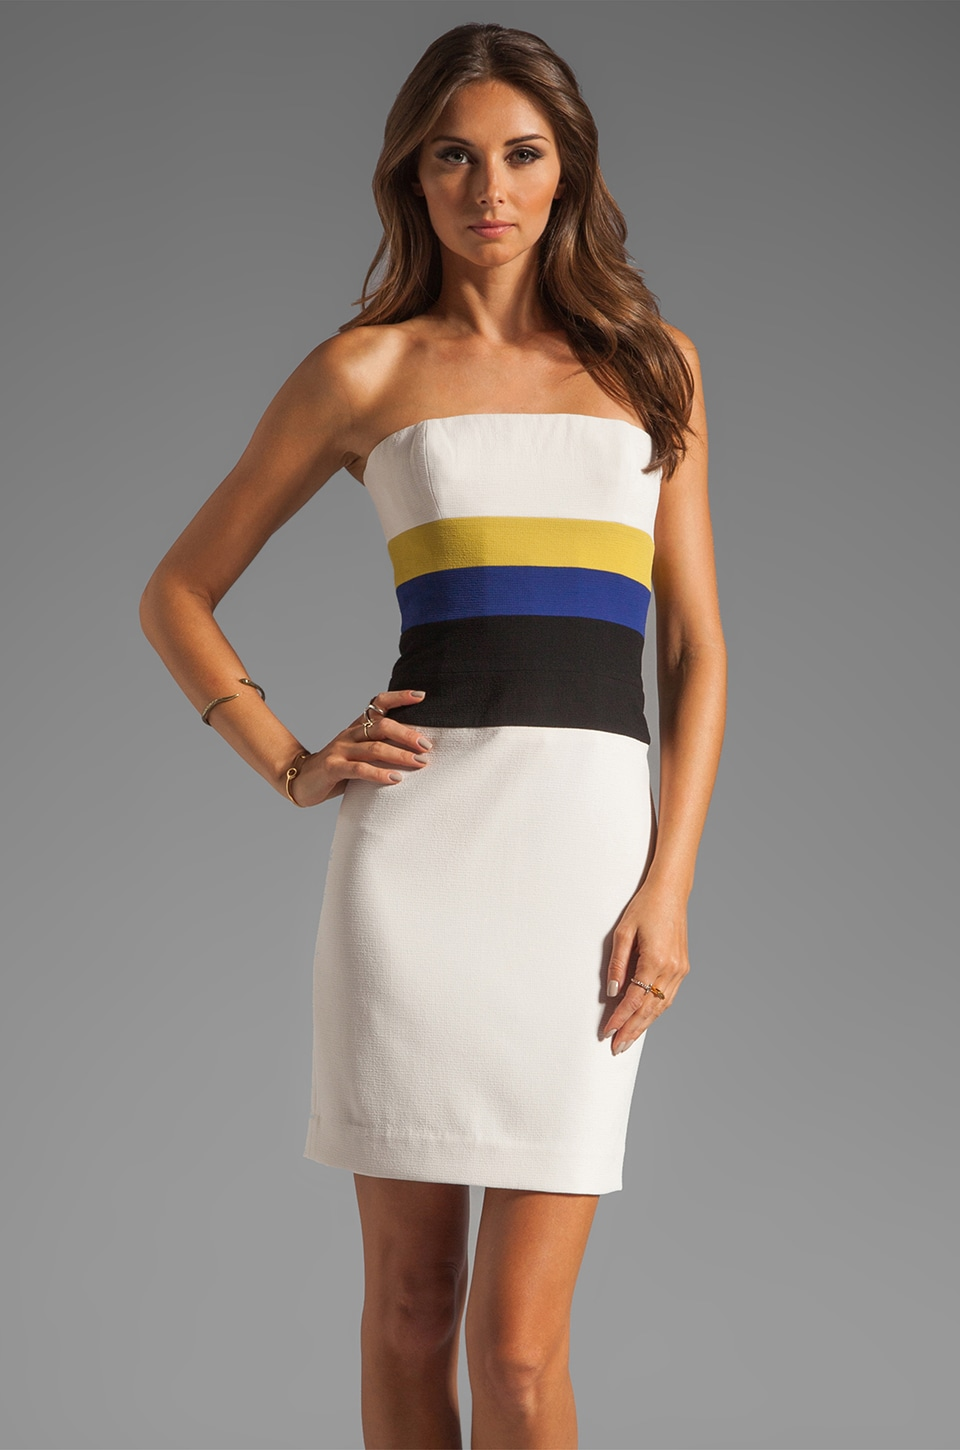 BCBGMAXAZRIA Bodycon Dress in Canvas Combo